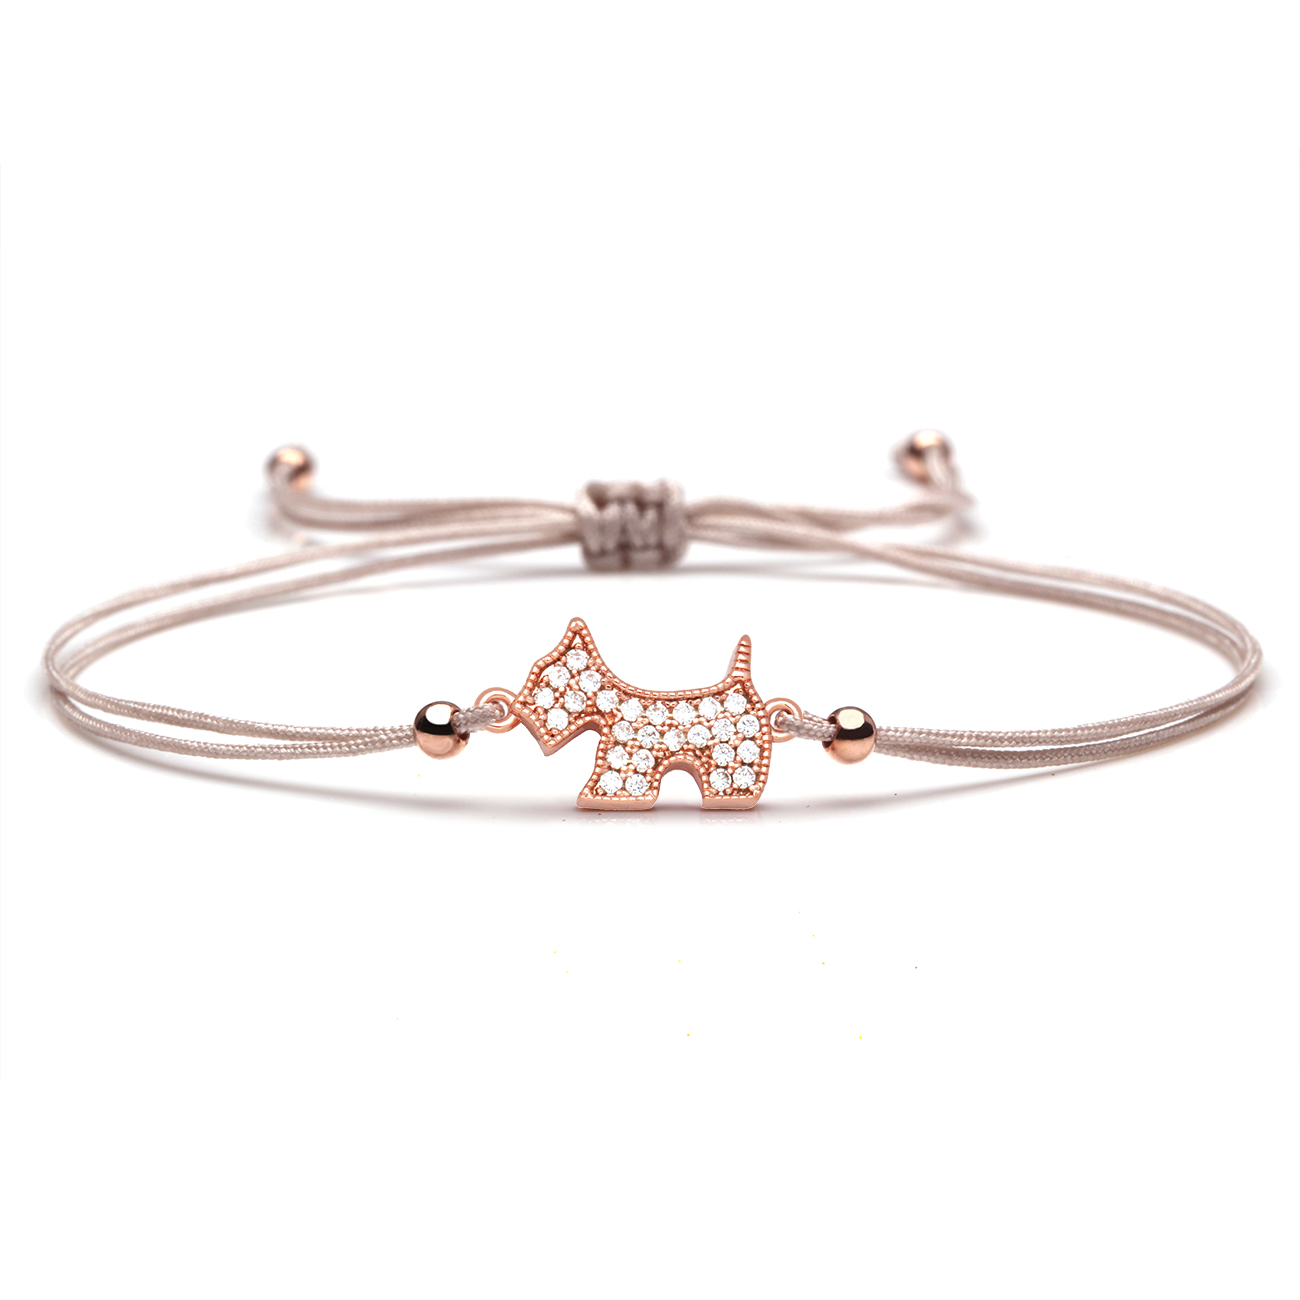 White Cubic Zirconia Lovely <font><b>Dog</b></font> Charm <font><b>Bracelet</b></font> Women Kid Cute Animal Pet <font><b>Dog</b></font> CZ Black Orange Red Green String Jewelry Present image